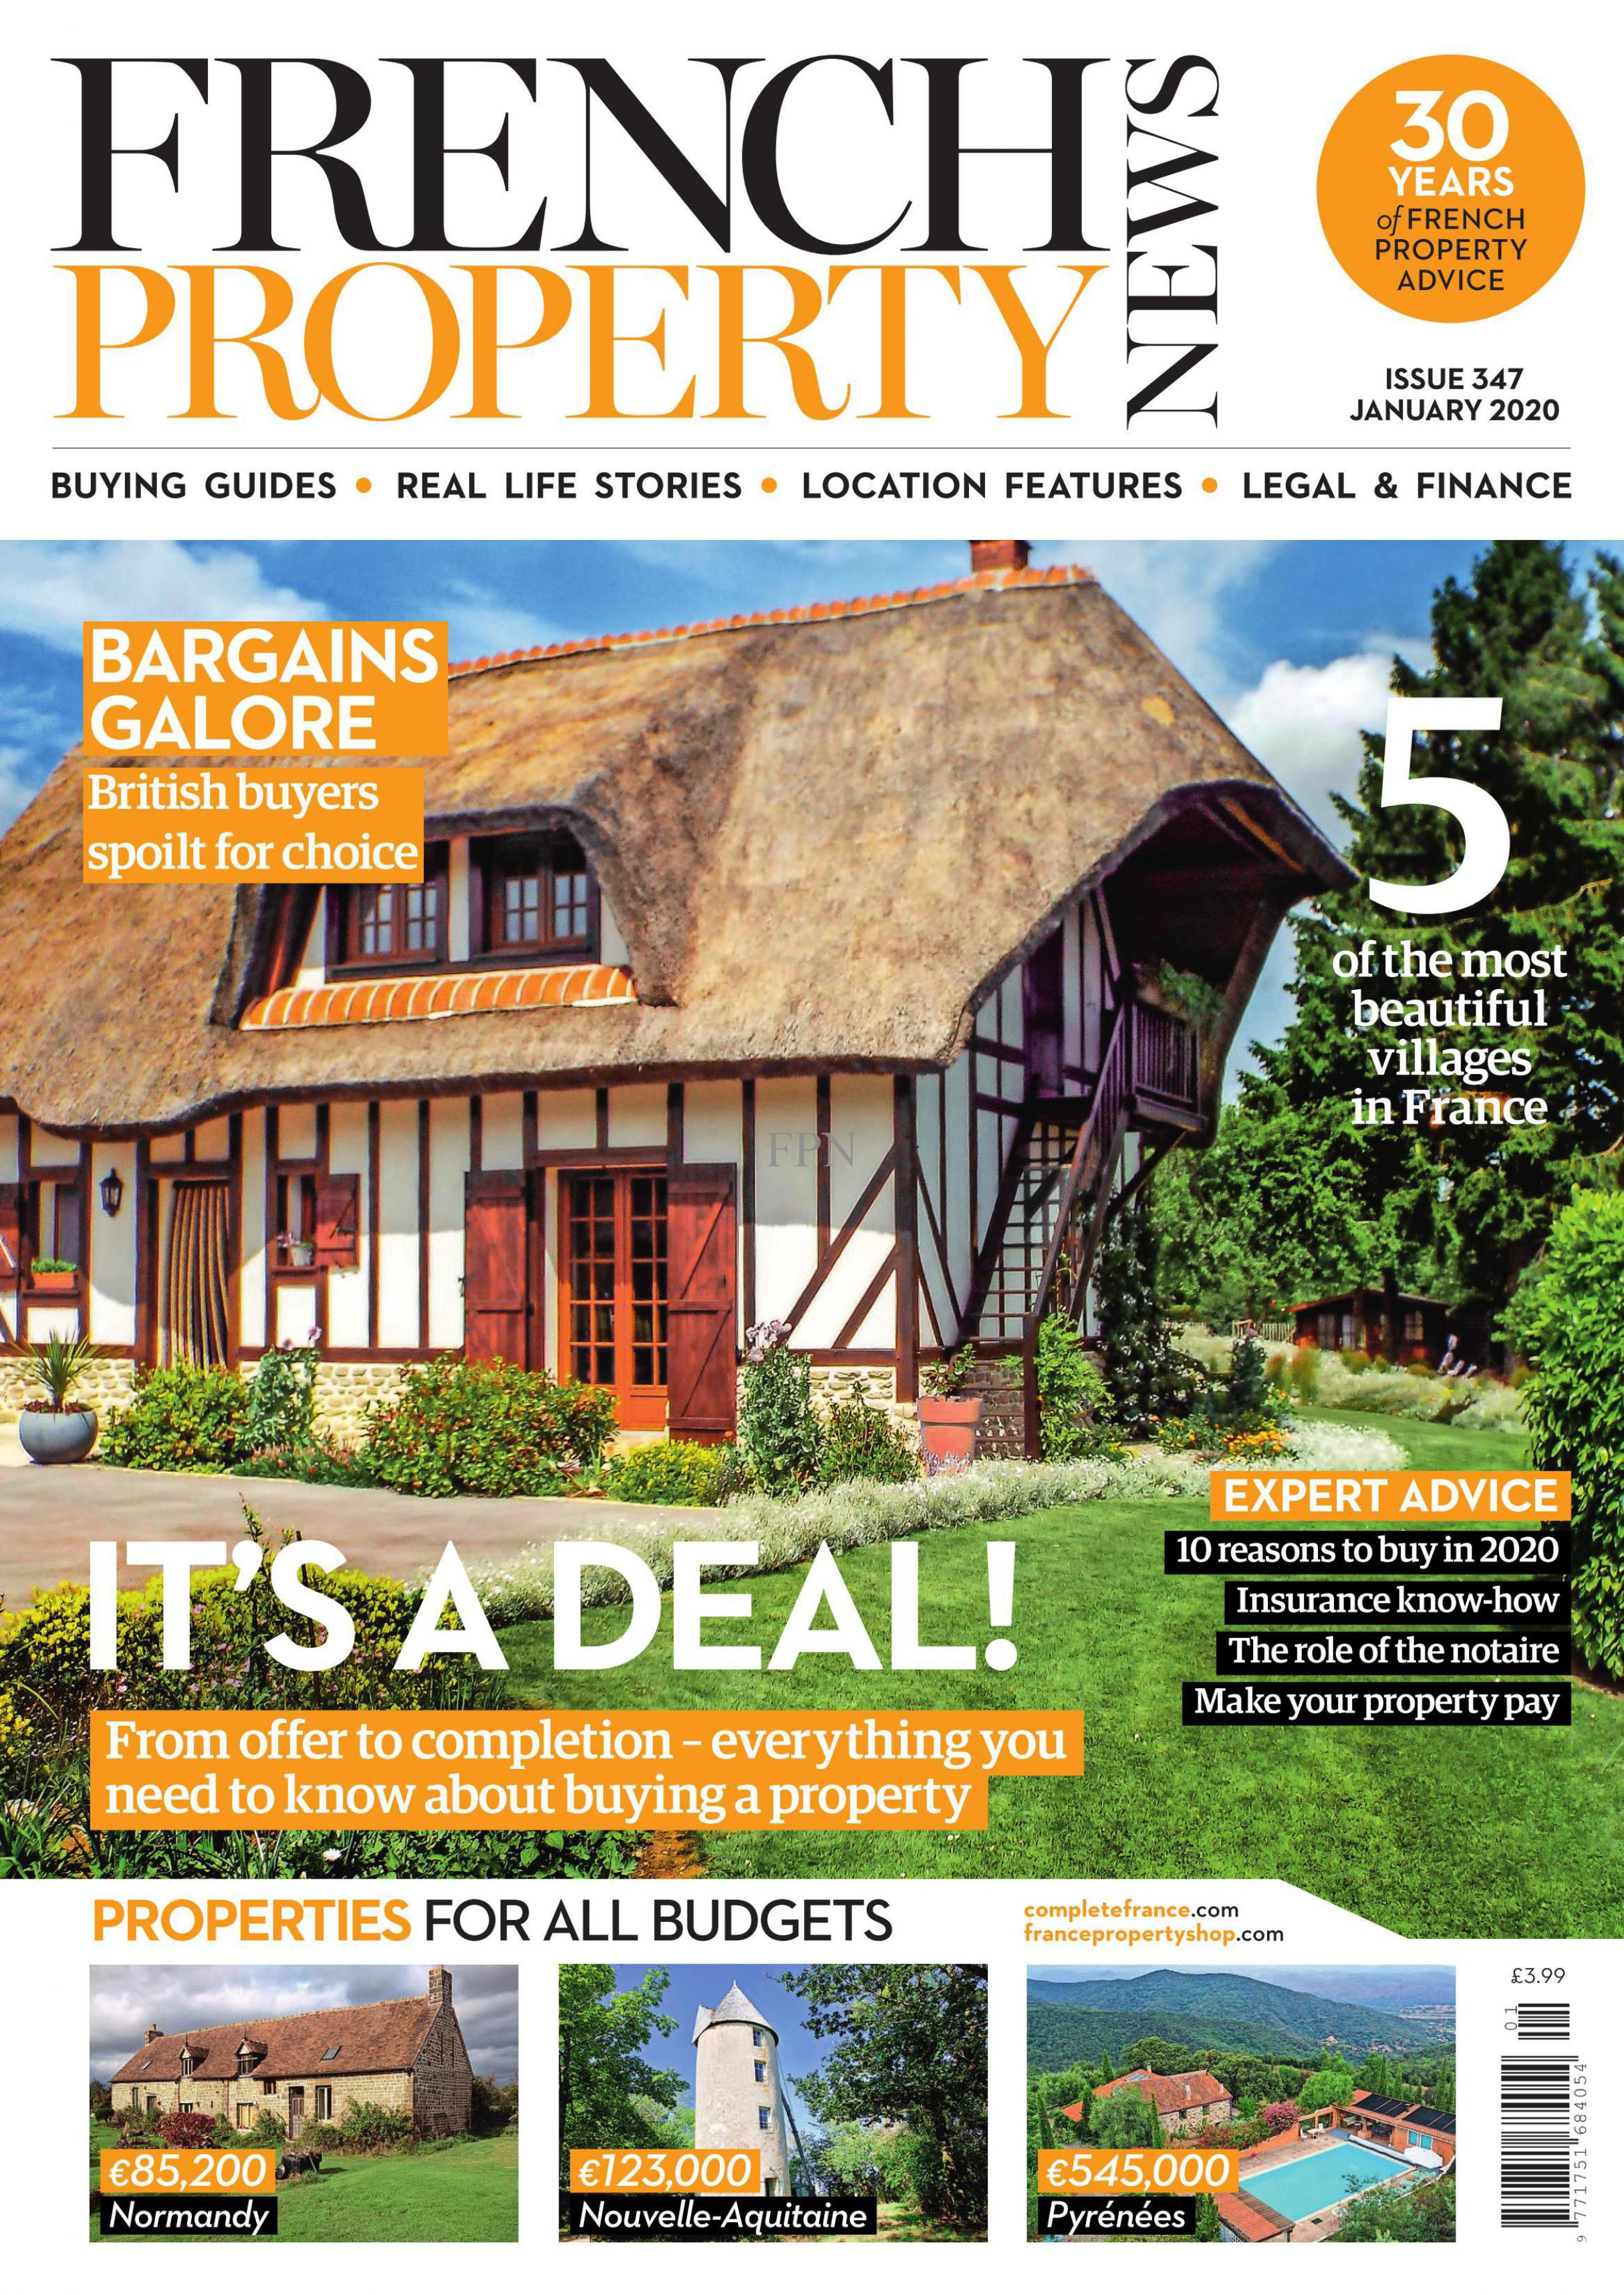 French Property News Jan 20 front cover